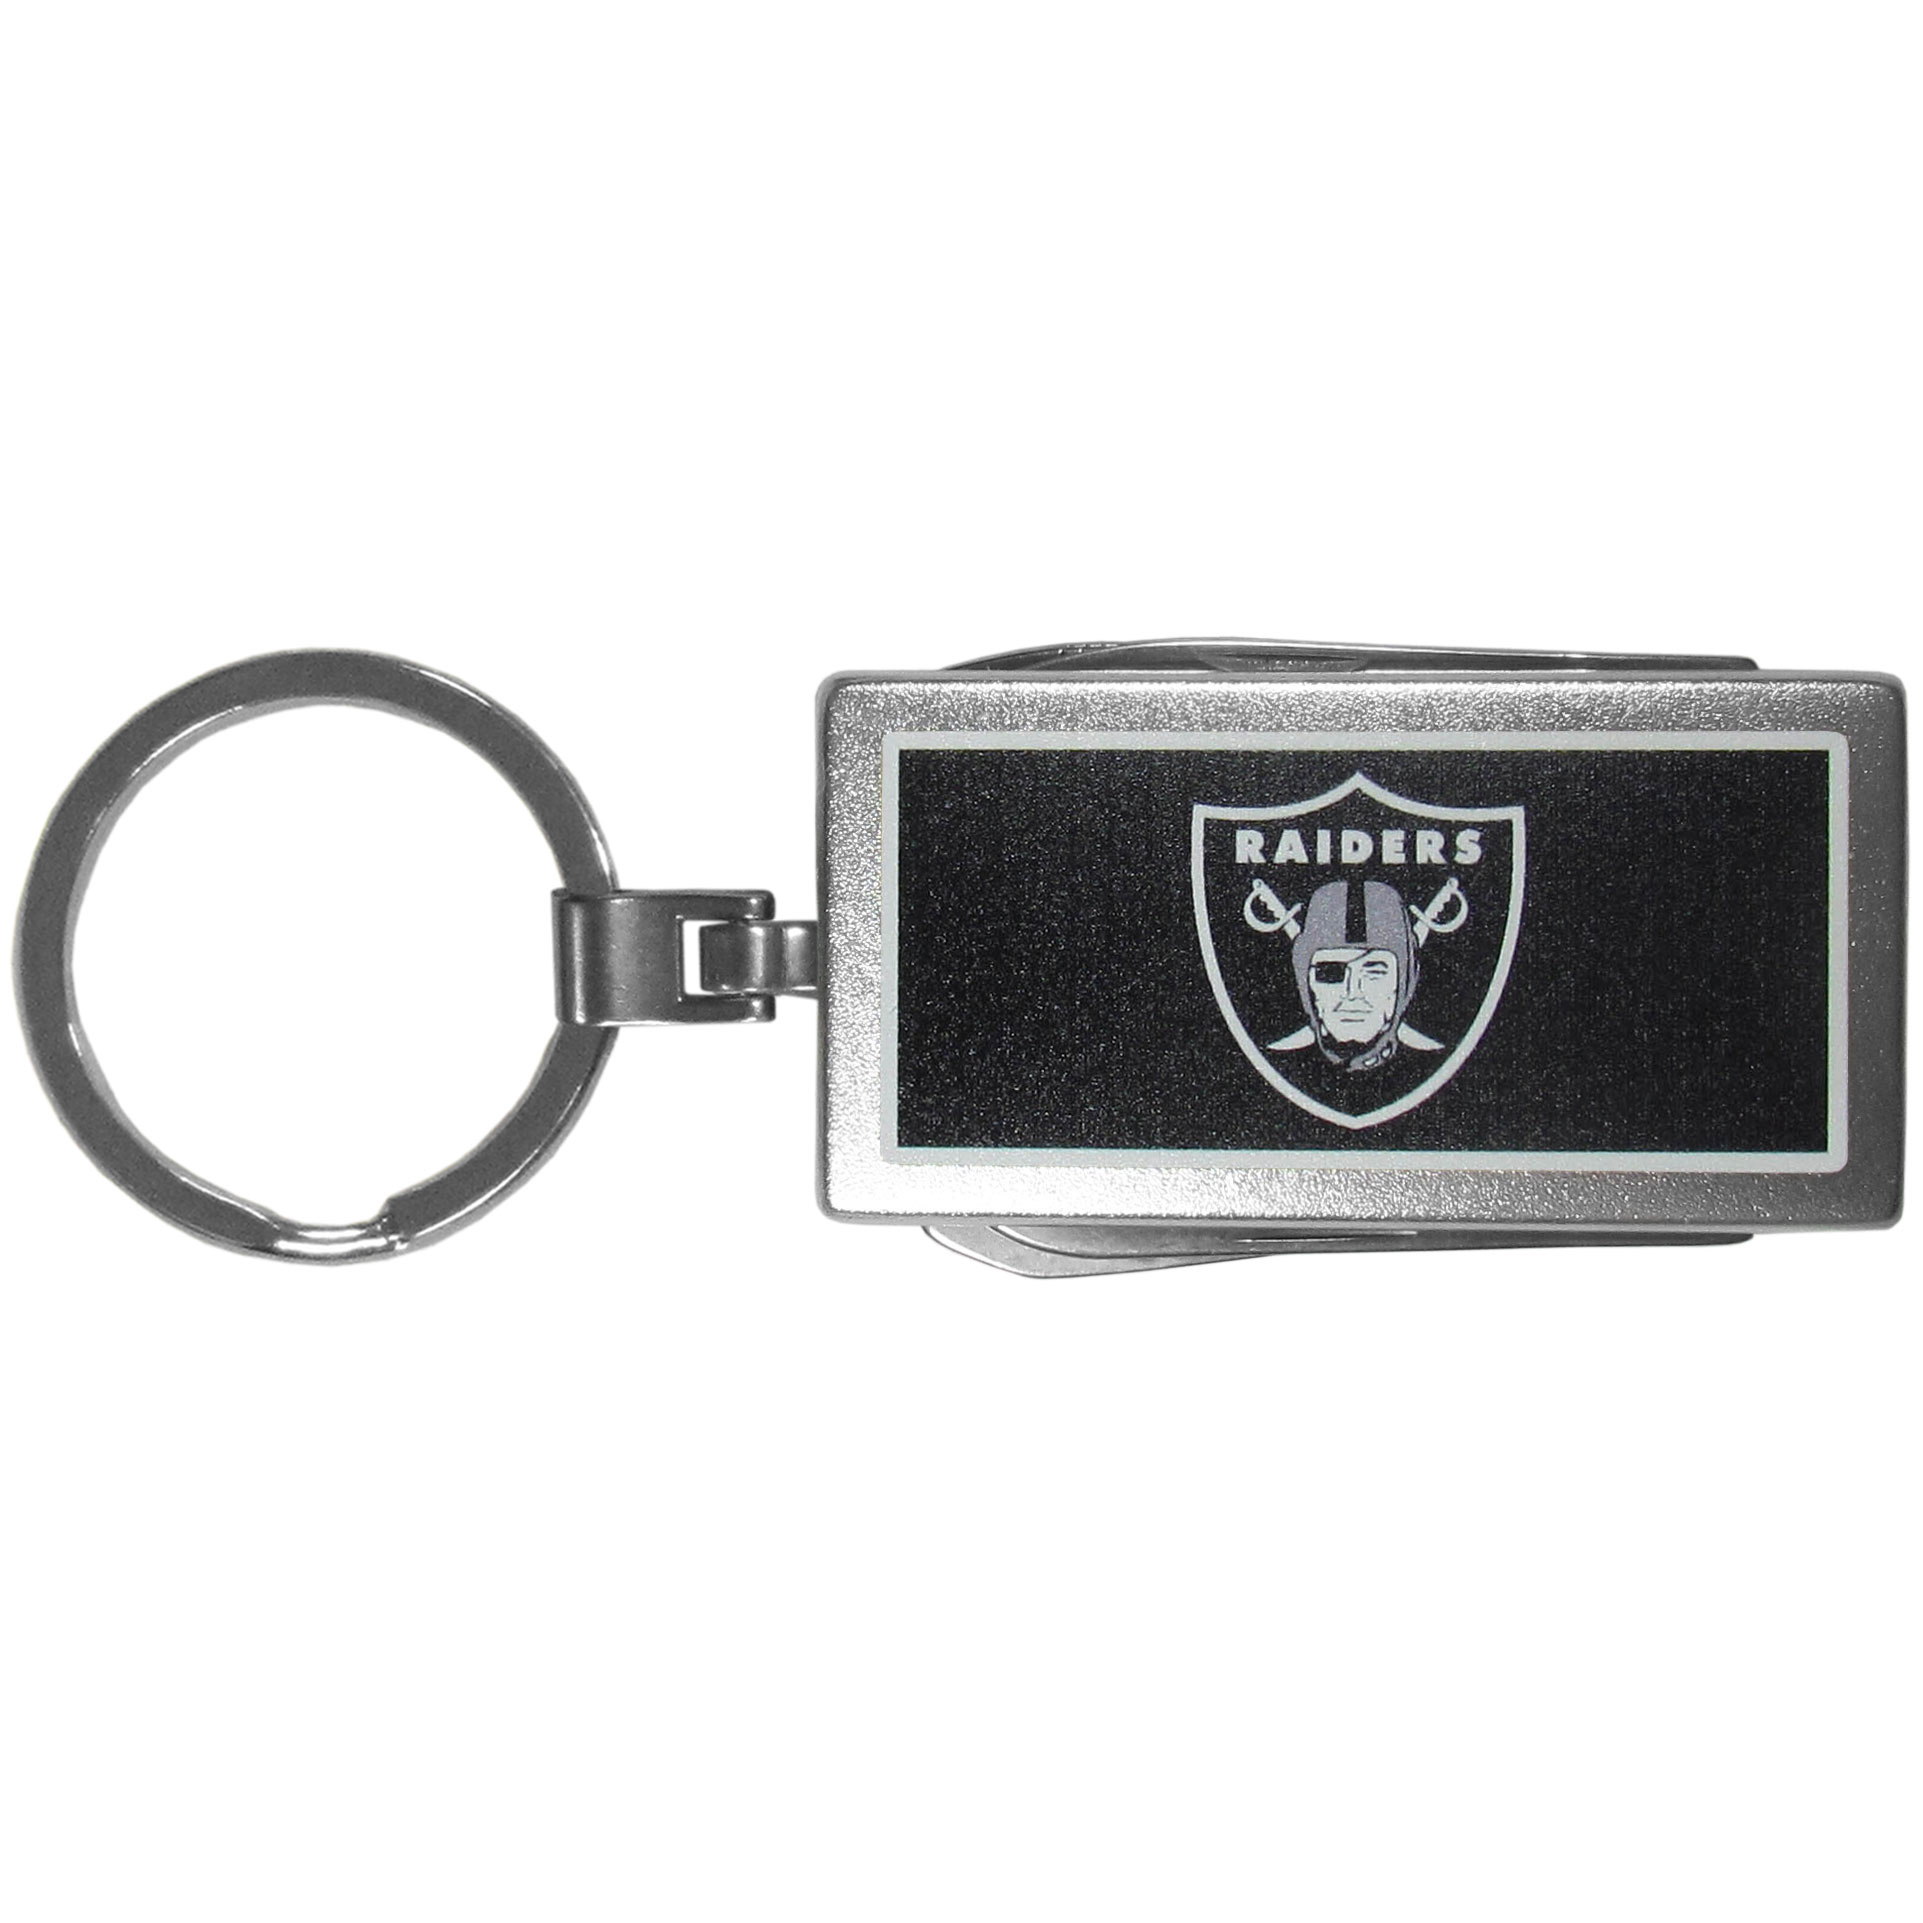 Oakland Raiders Multi-tool Key Chain, Logo - Be the hero at the tailgate, camping, or on a Friday night with your Oakland Raiders Multi-Tool Keychain which comes complete with bottle opener, scissors, knife, nail file and screw driver. Be it opening a package or a beverage Siskiyou's Multi-Tool Keychain goes wherever your keys do. The keychain hangs at 4 inches long when closed.